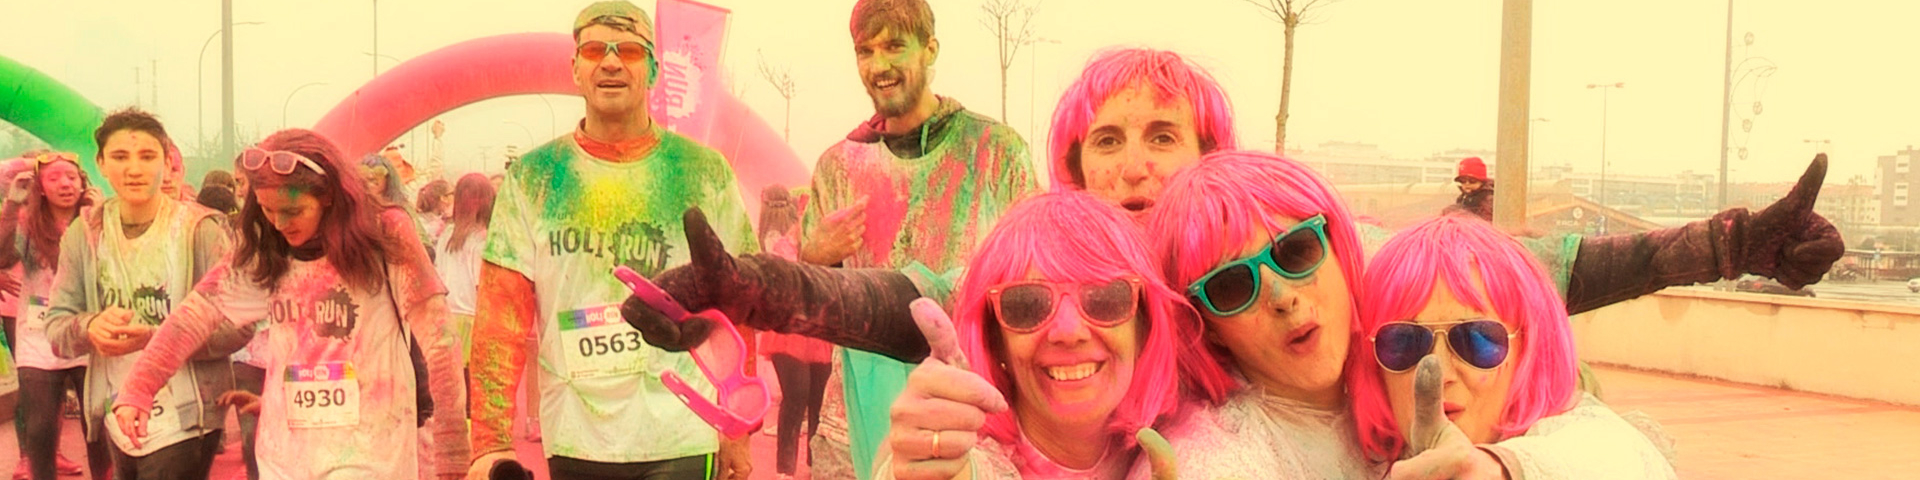 Holi Run – The ART Company.